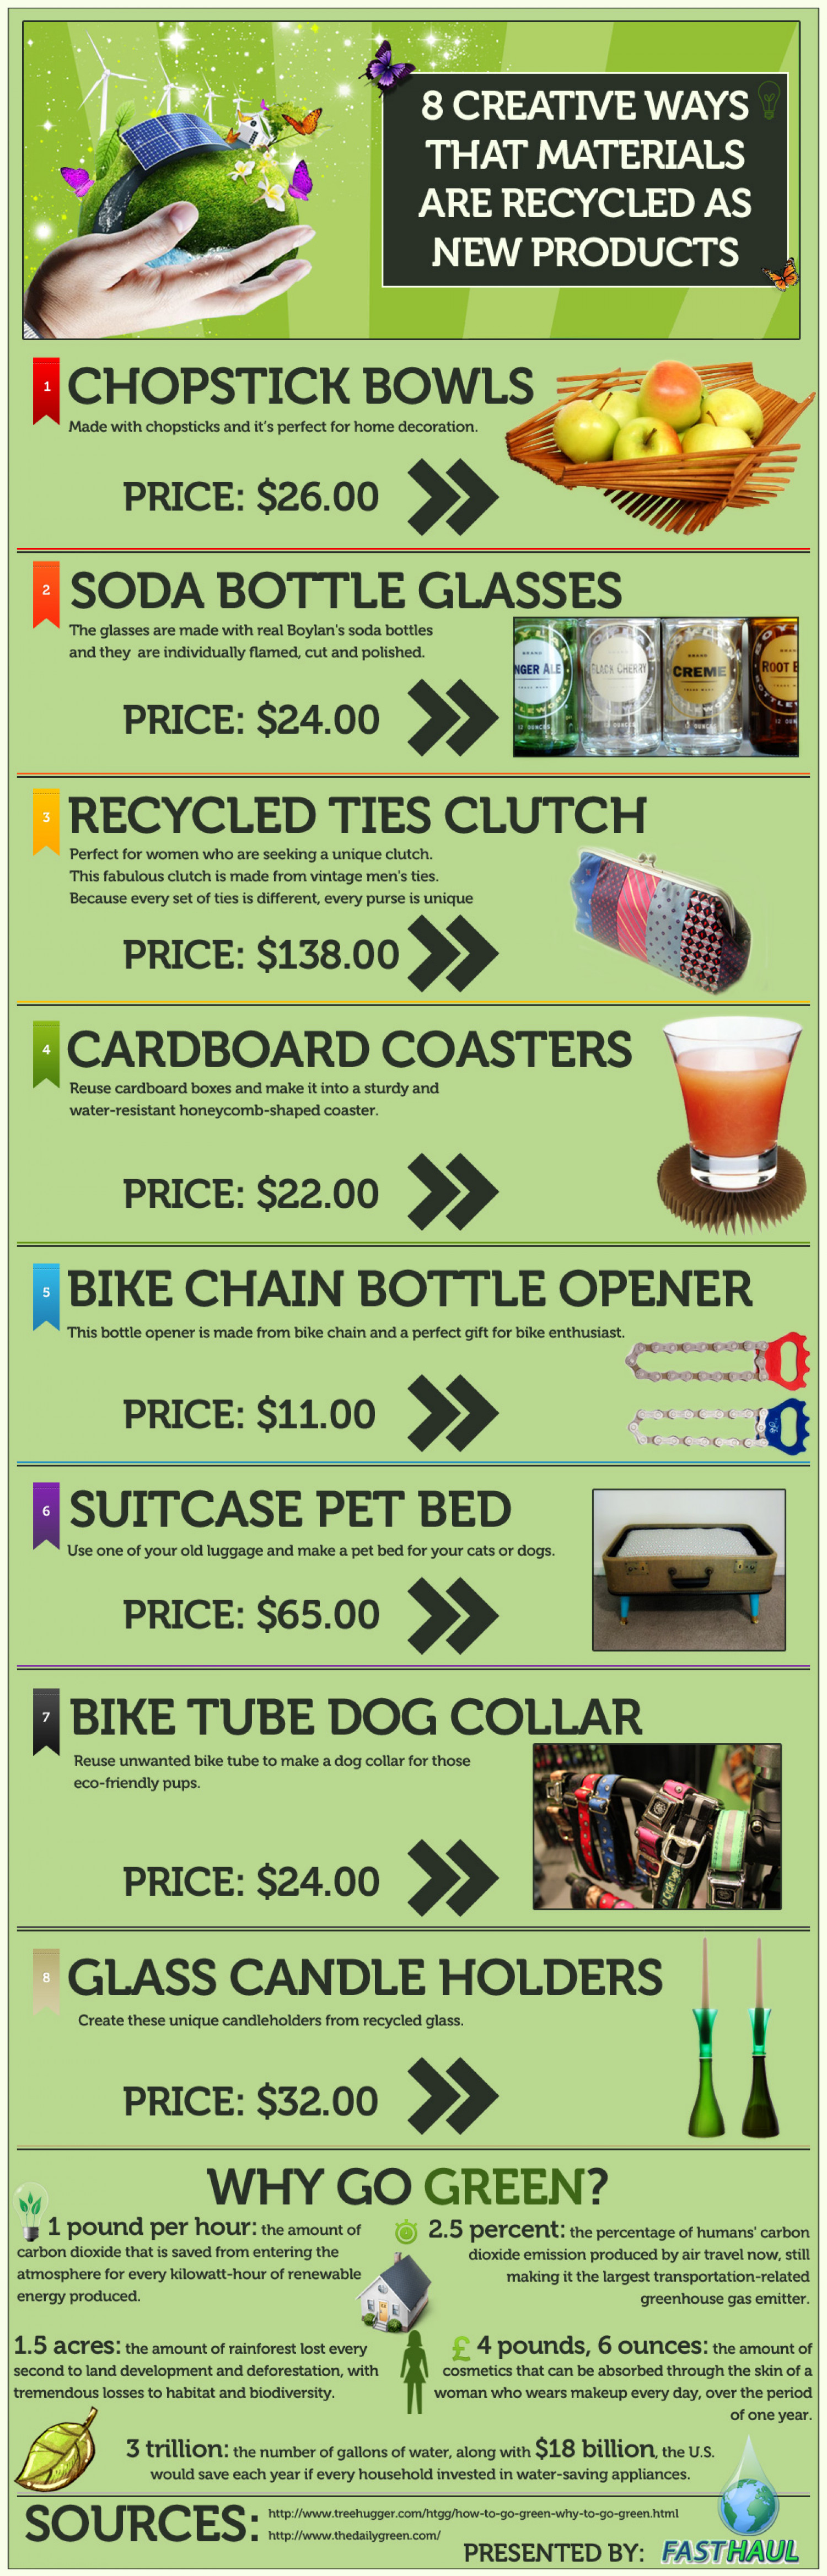 Turning Trash into Treasure Infographic